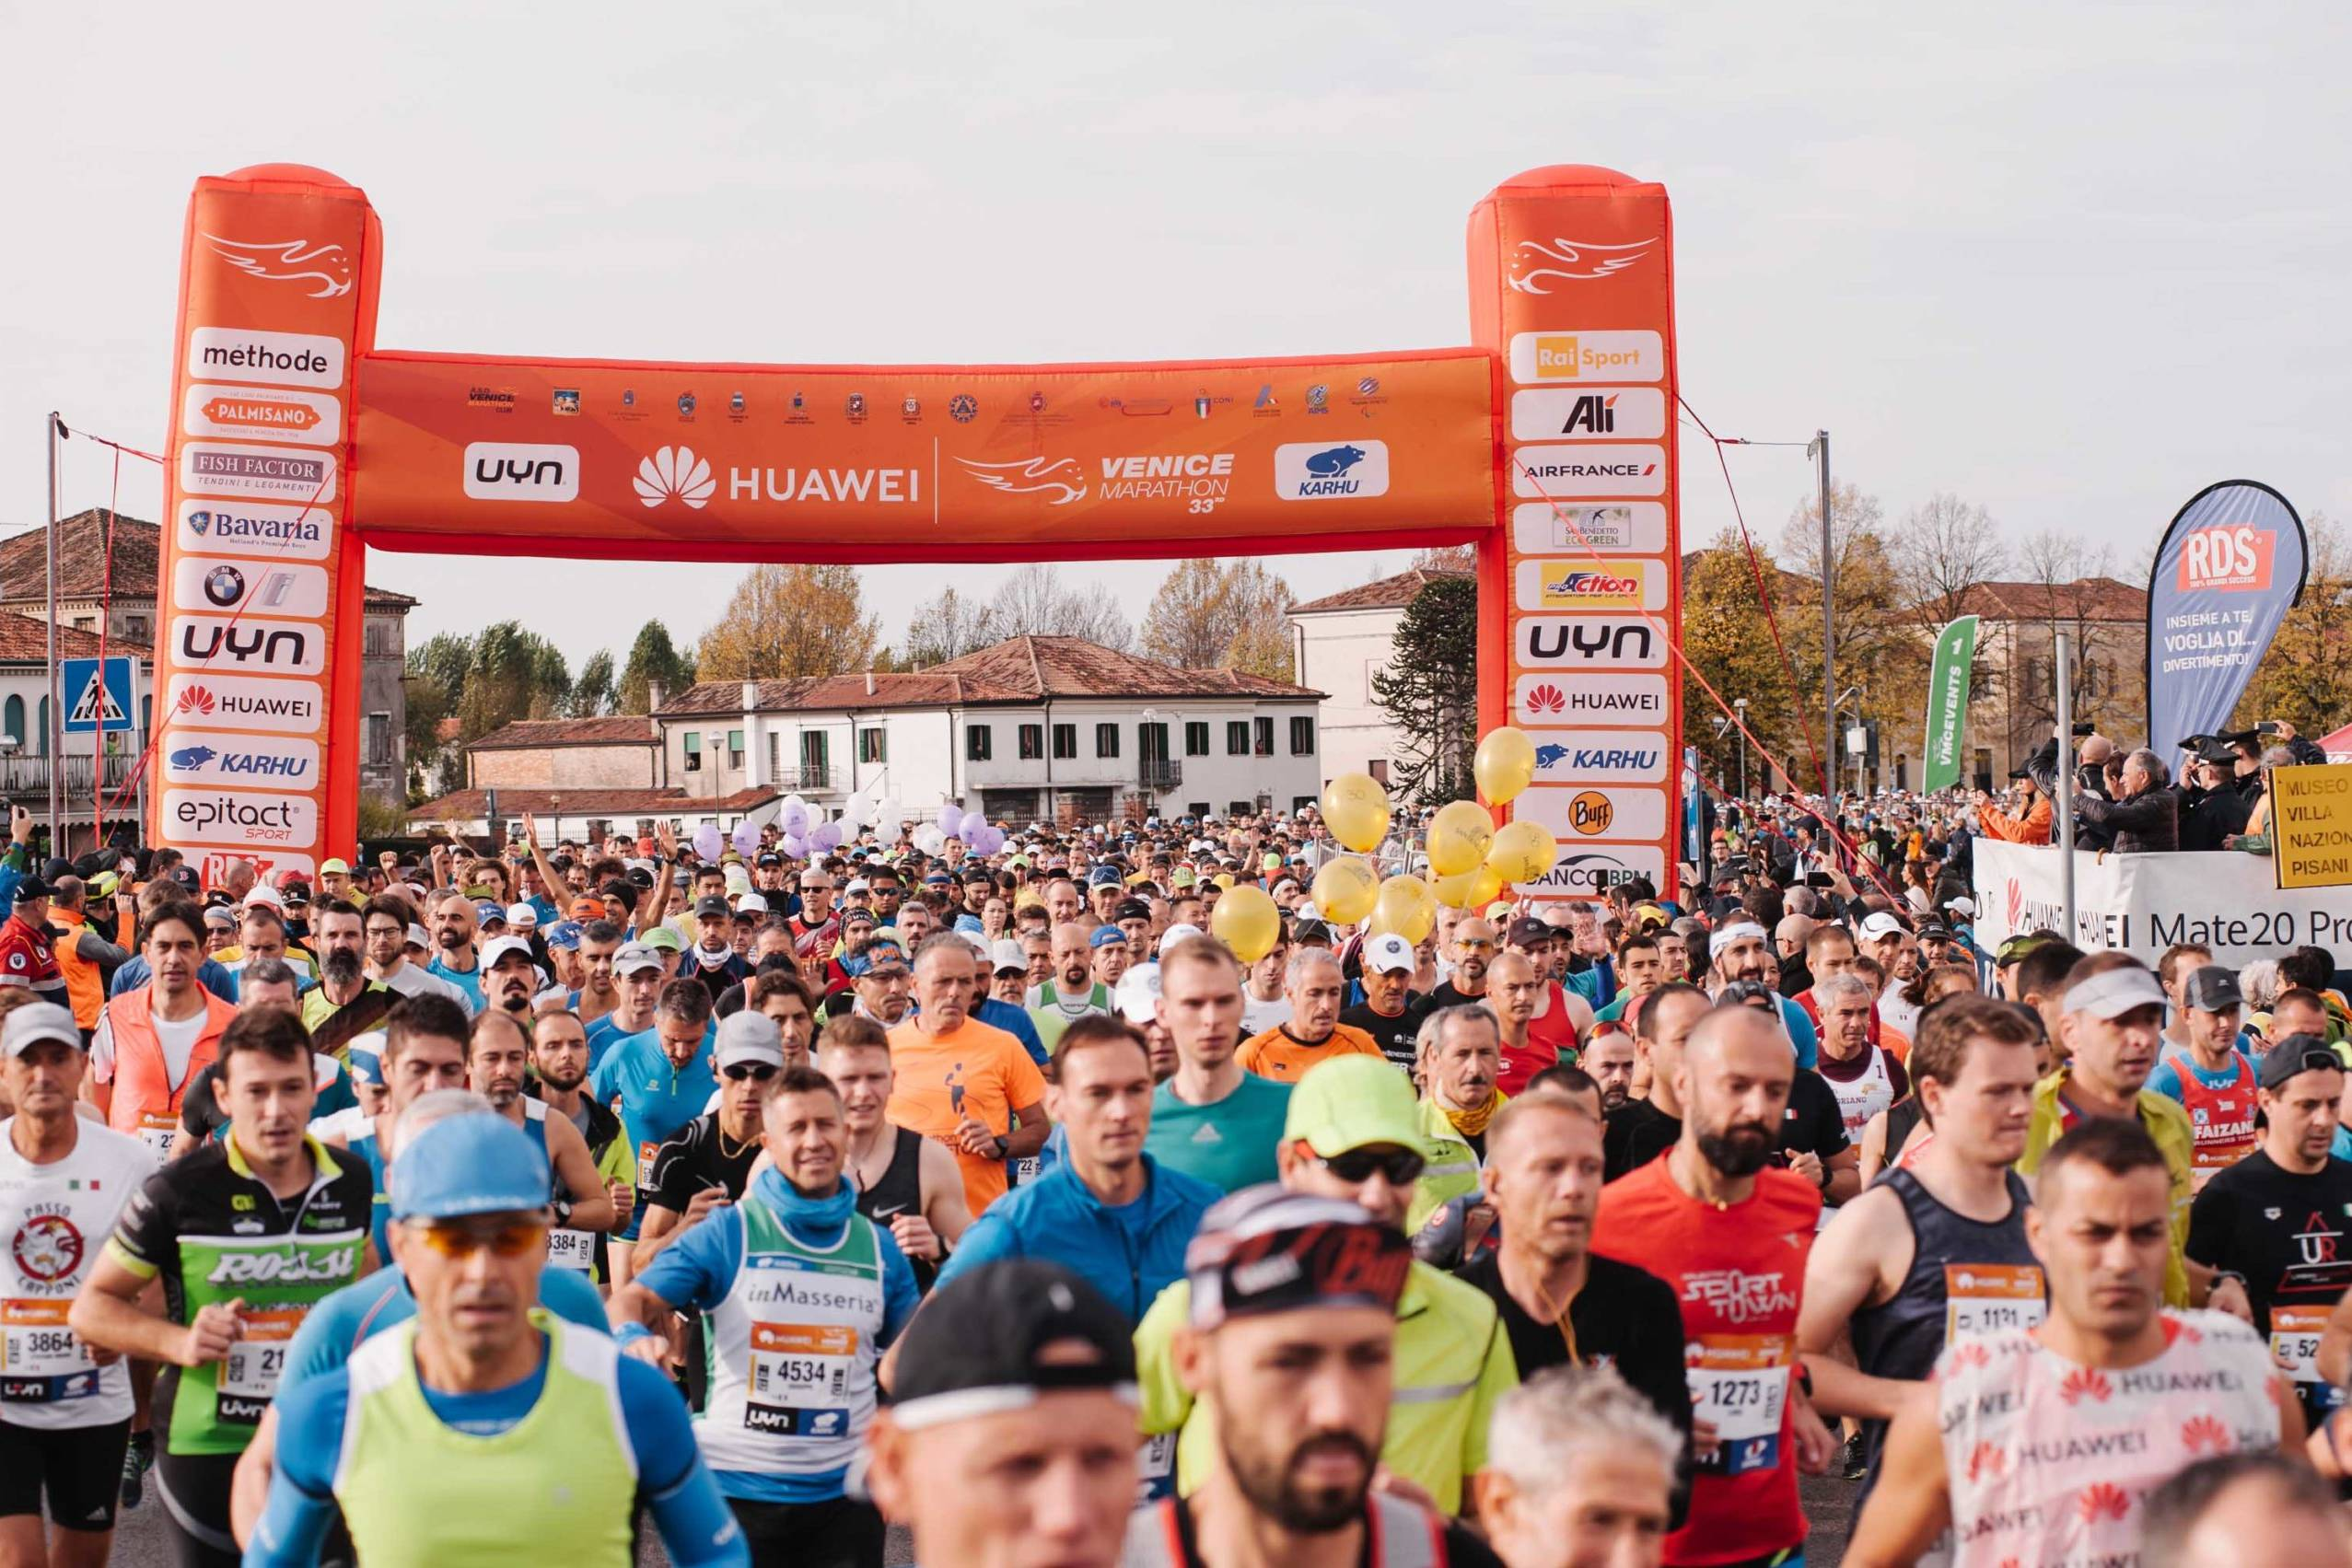 Huawei Marathons venezia start